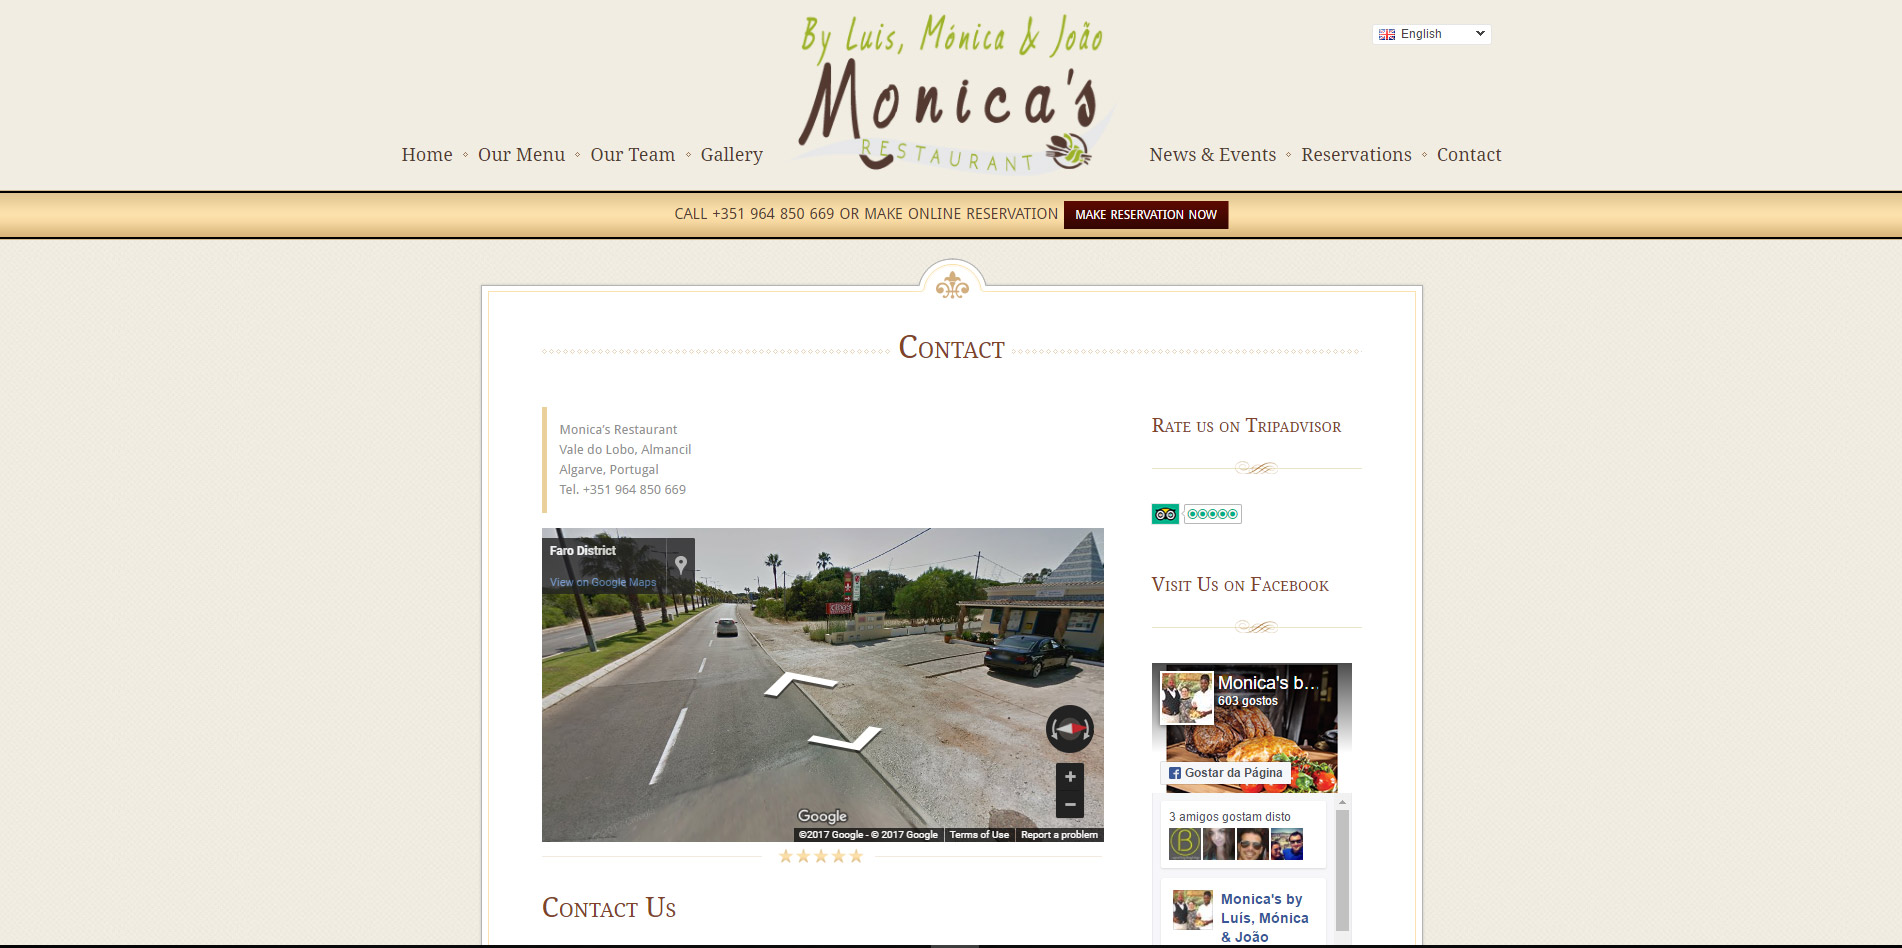 contact page website design for restaurant located in the Algarve